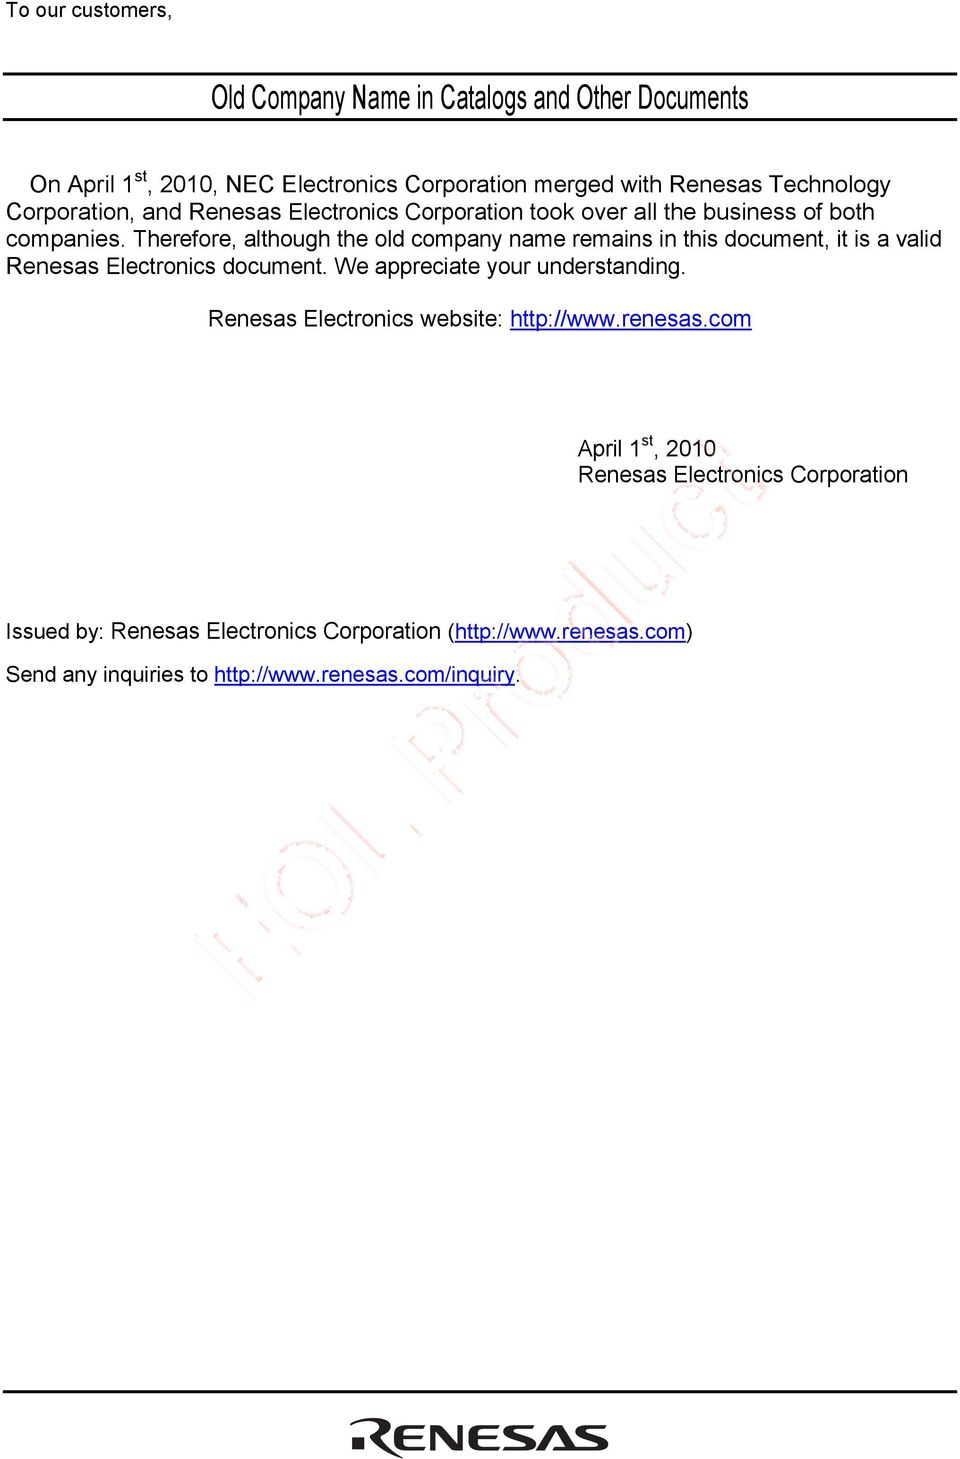 Therefore, although the old company name remains in this document, it is a valid Renesas lectronics document. We appreciate your understanding.